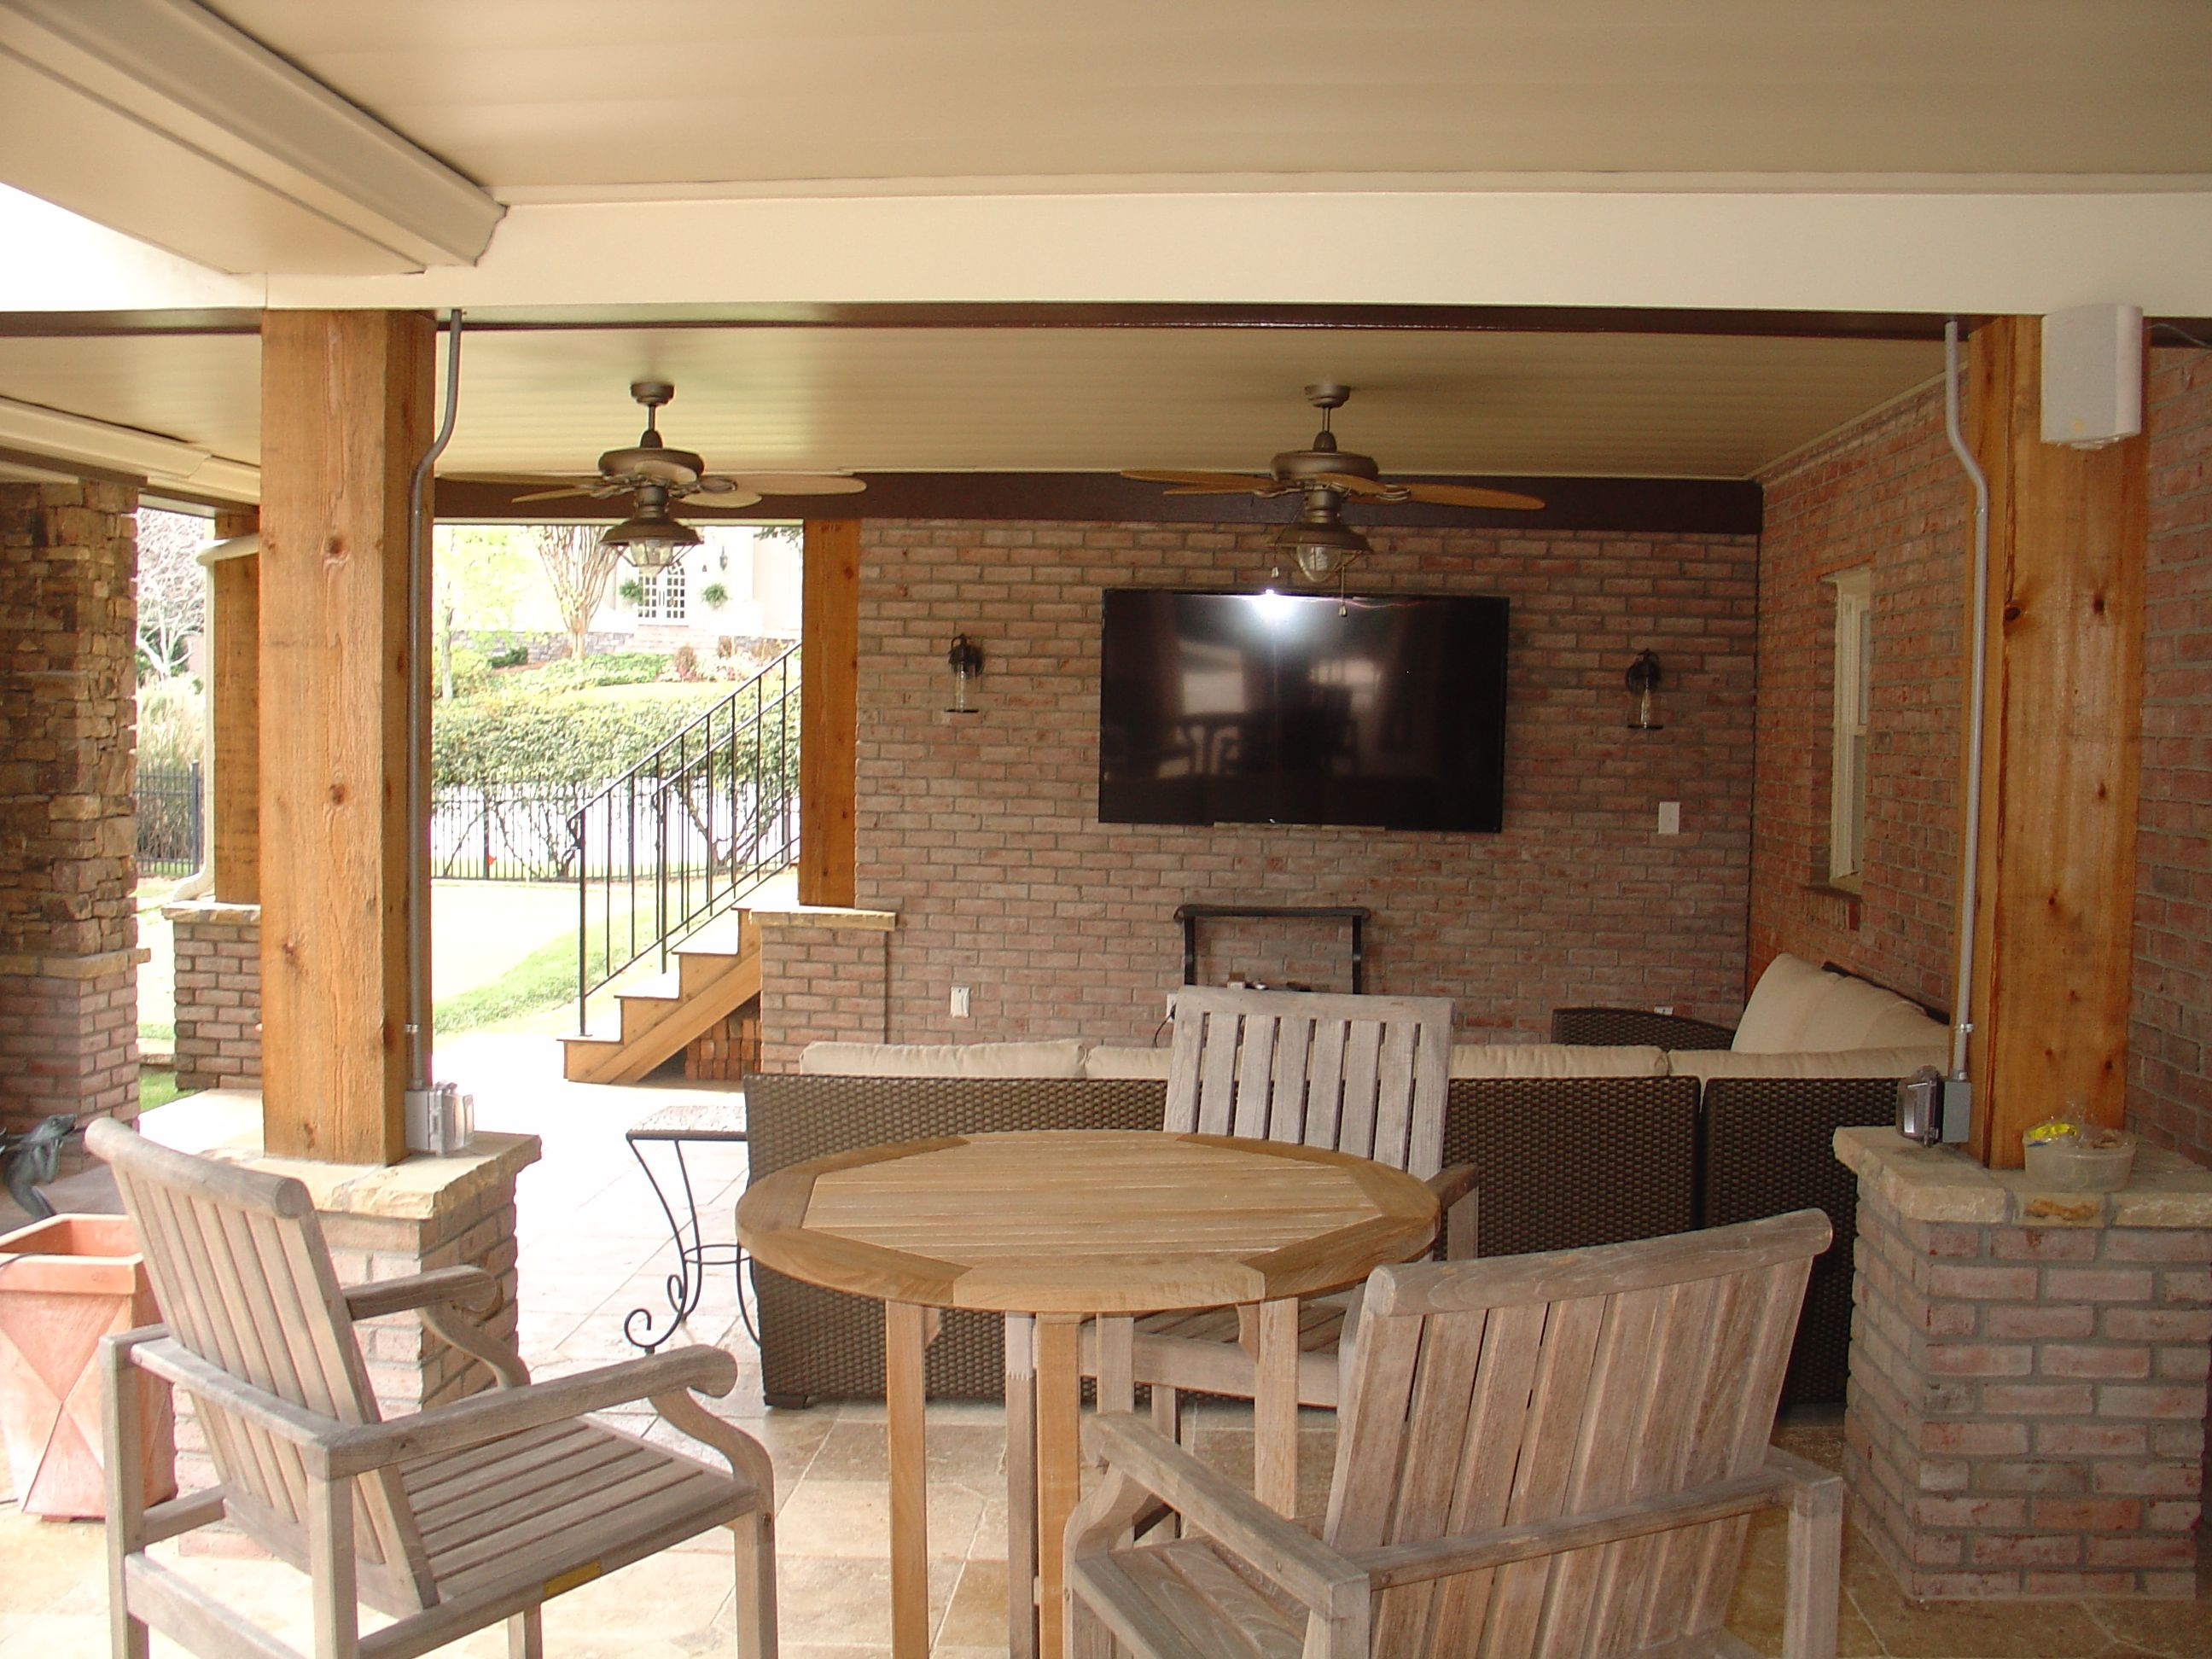 Decks Under Cover Is A Weather Tight Ceiling Material Attached Under A Raised Deck To Catch Rainwate Patio Seating Area Patio Stones Kitchen Bathroom Remodel